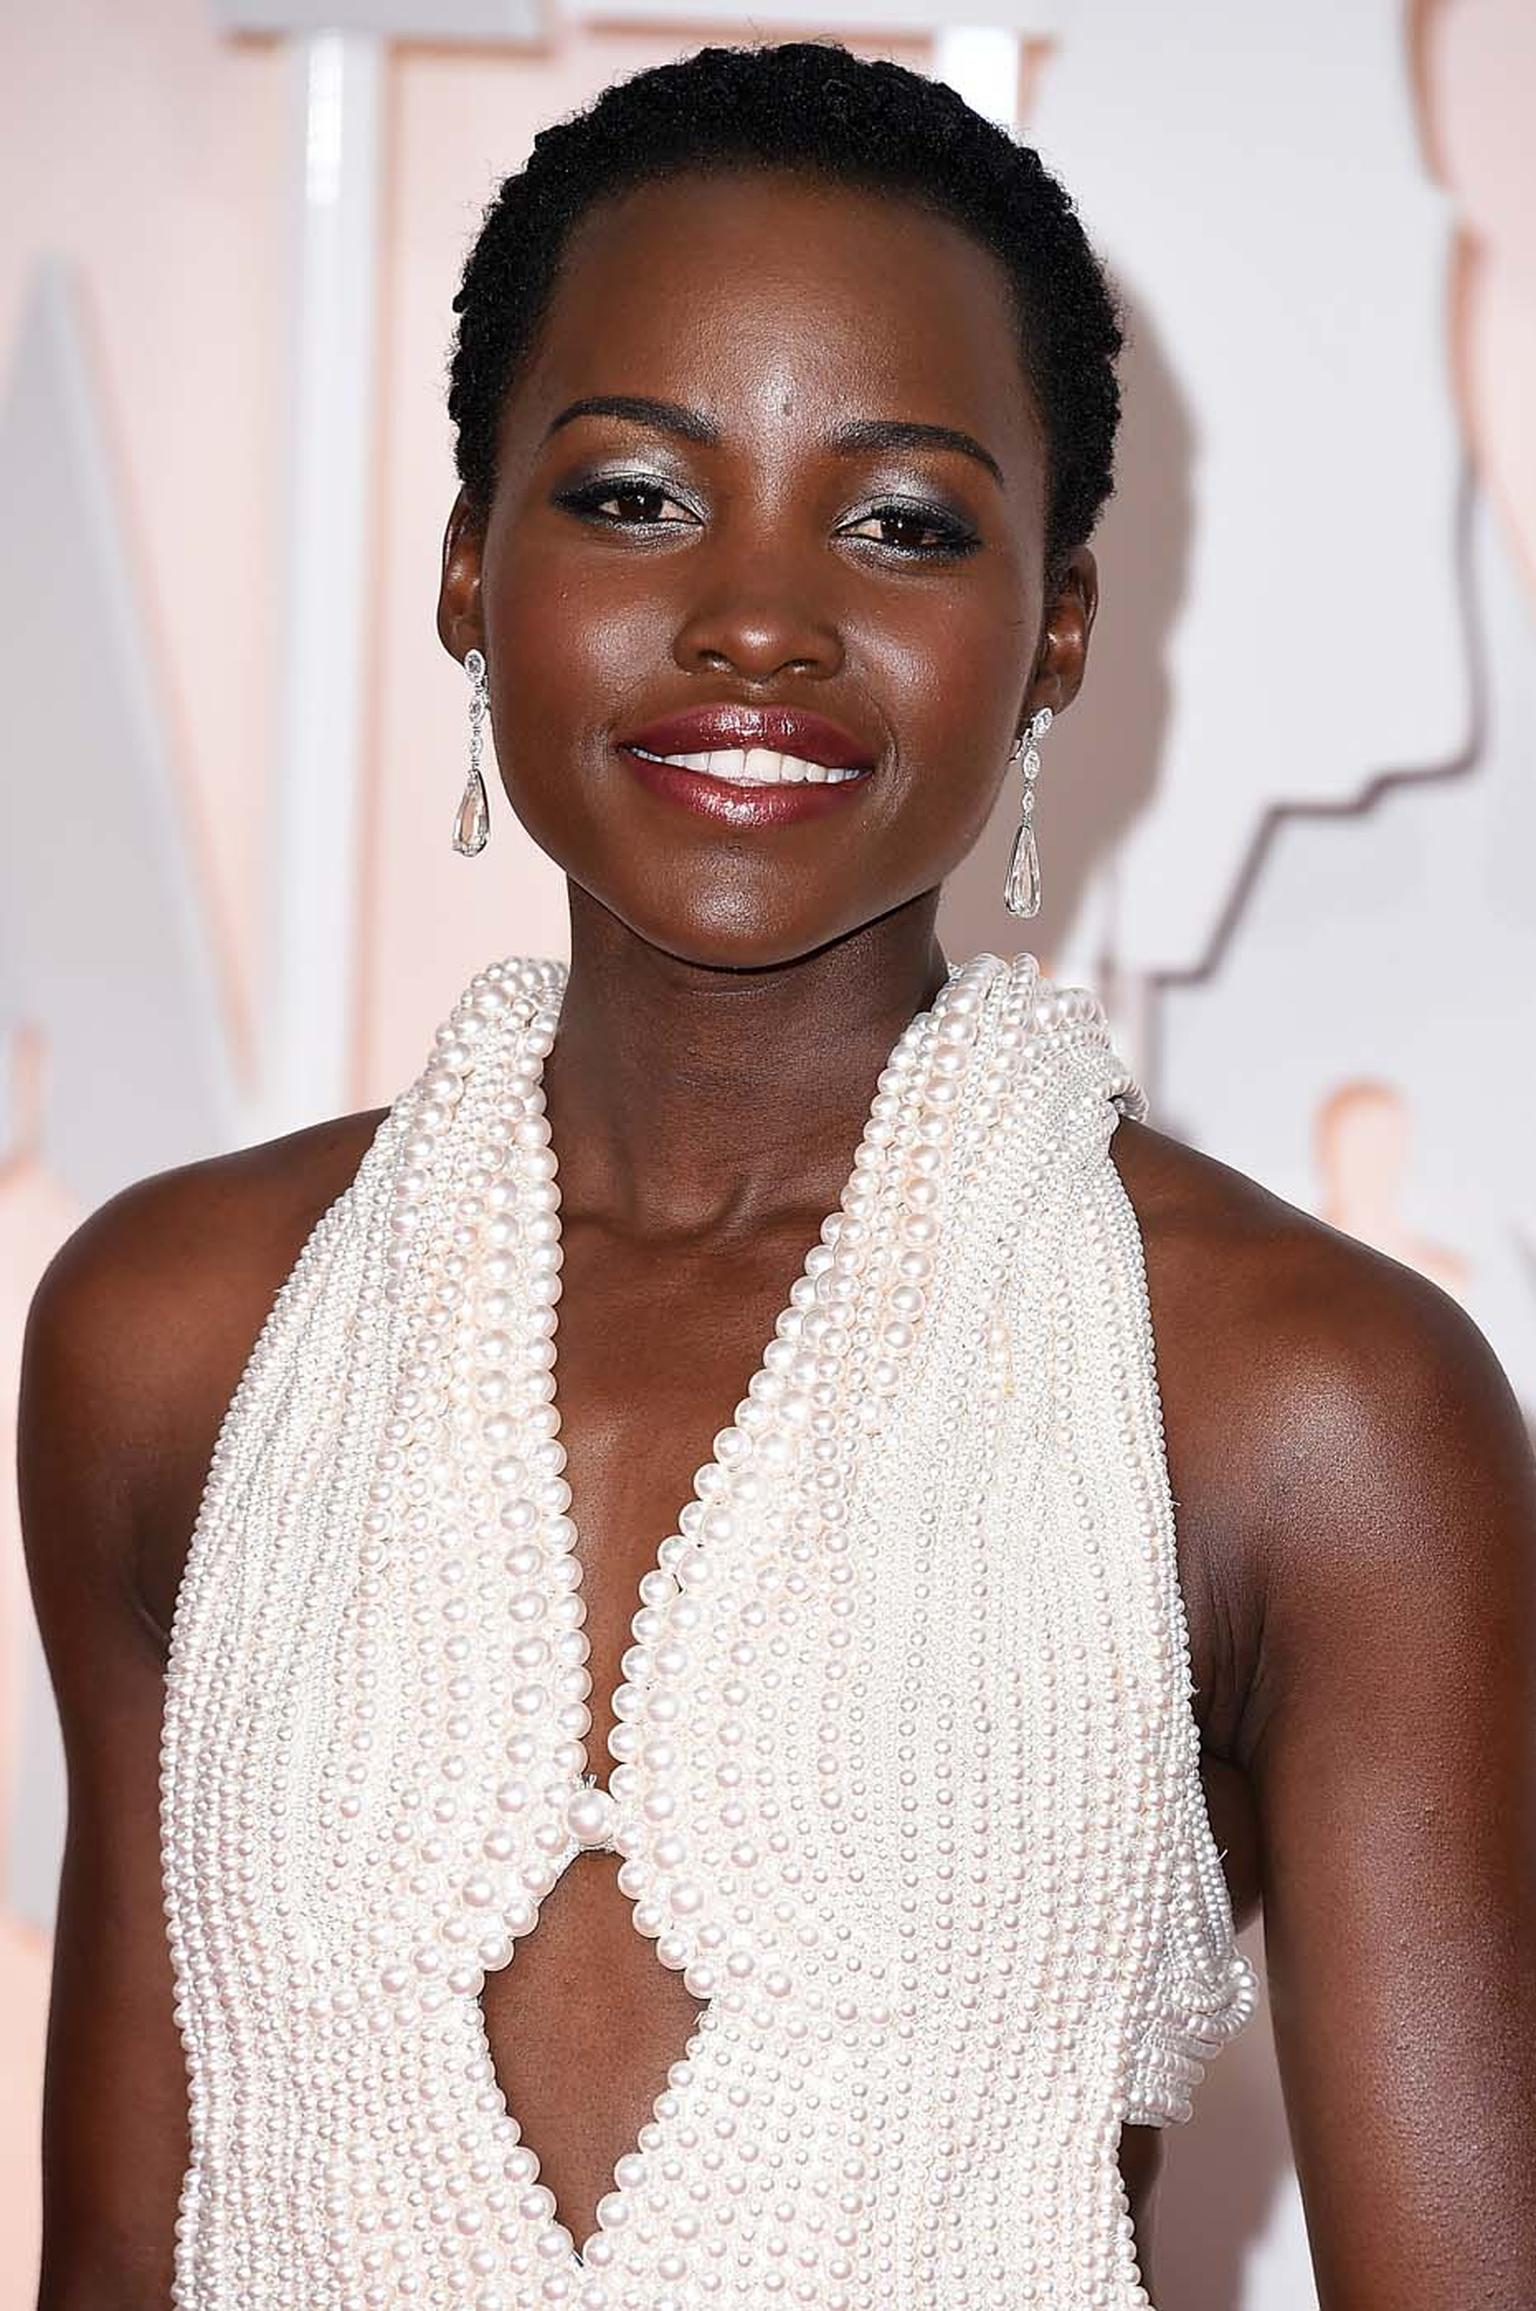 Pearls were a popular choice at this year's Oscars, but instead of choosing them as her red carpet jewelry, actress Lupita Nyong'o wore all 6,000 of them in the shape of her custom Calvin Klein dress. She did, however, add just the right amount of sparkle